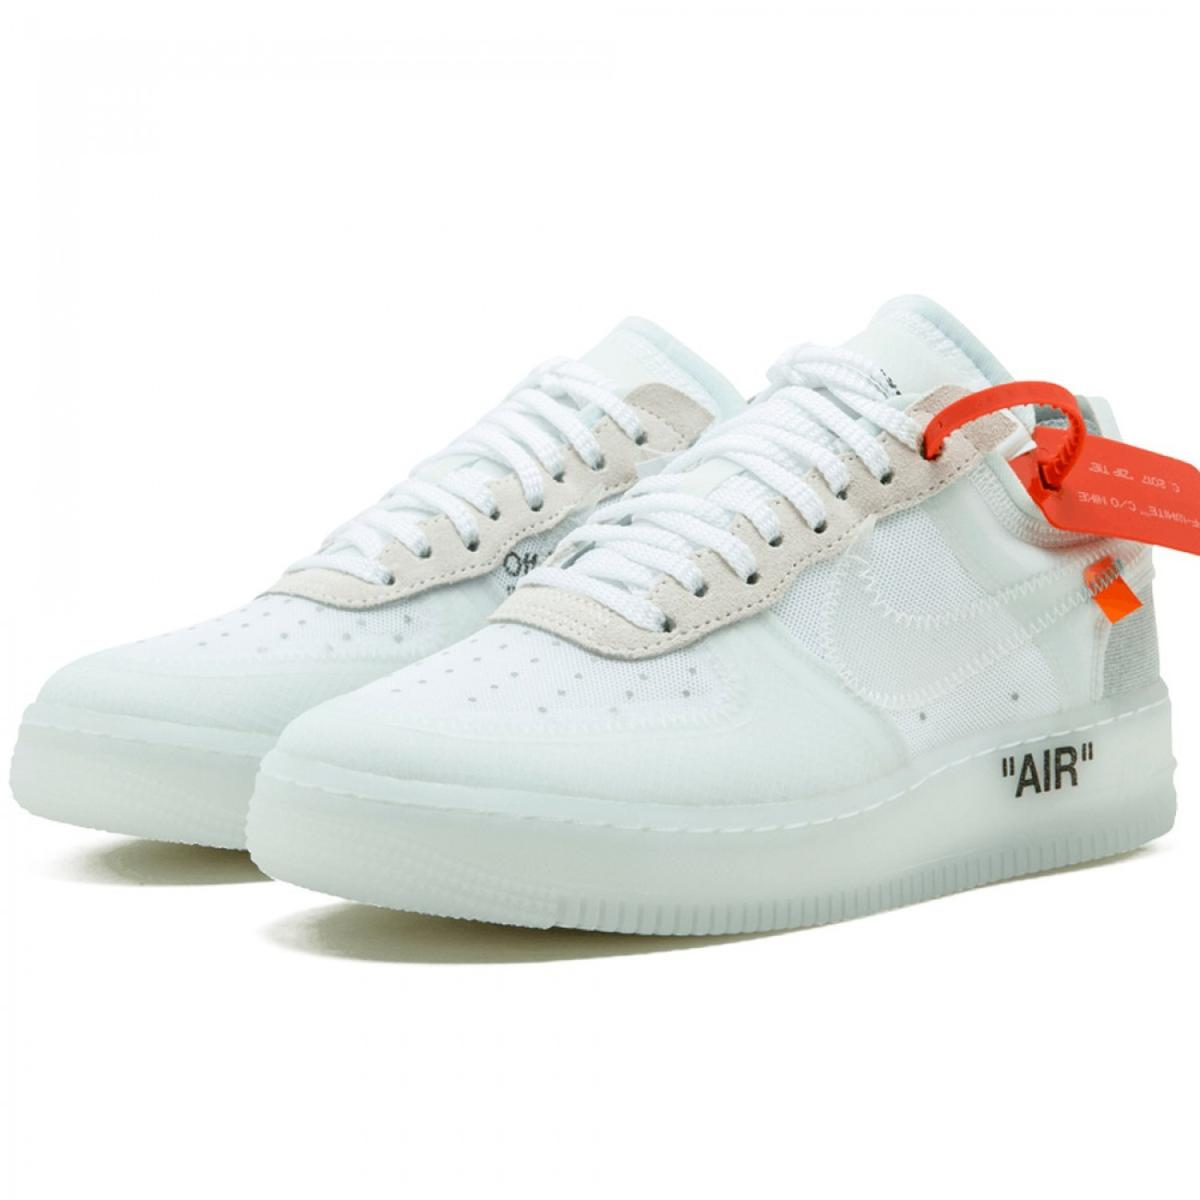 Nike x Off White Air Force 1 Low Virgil Abloh in 10777